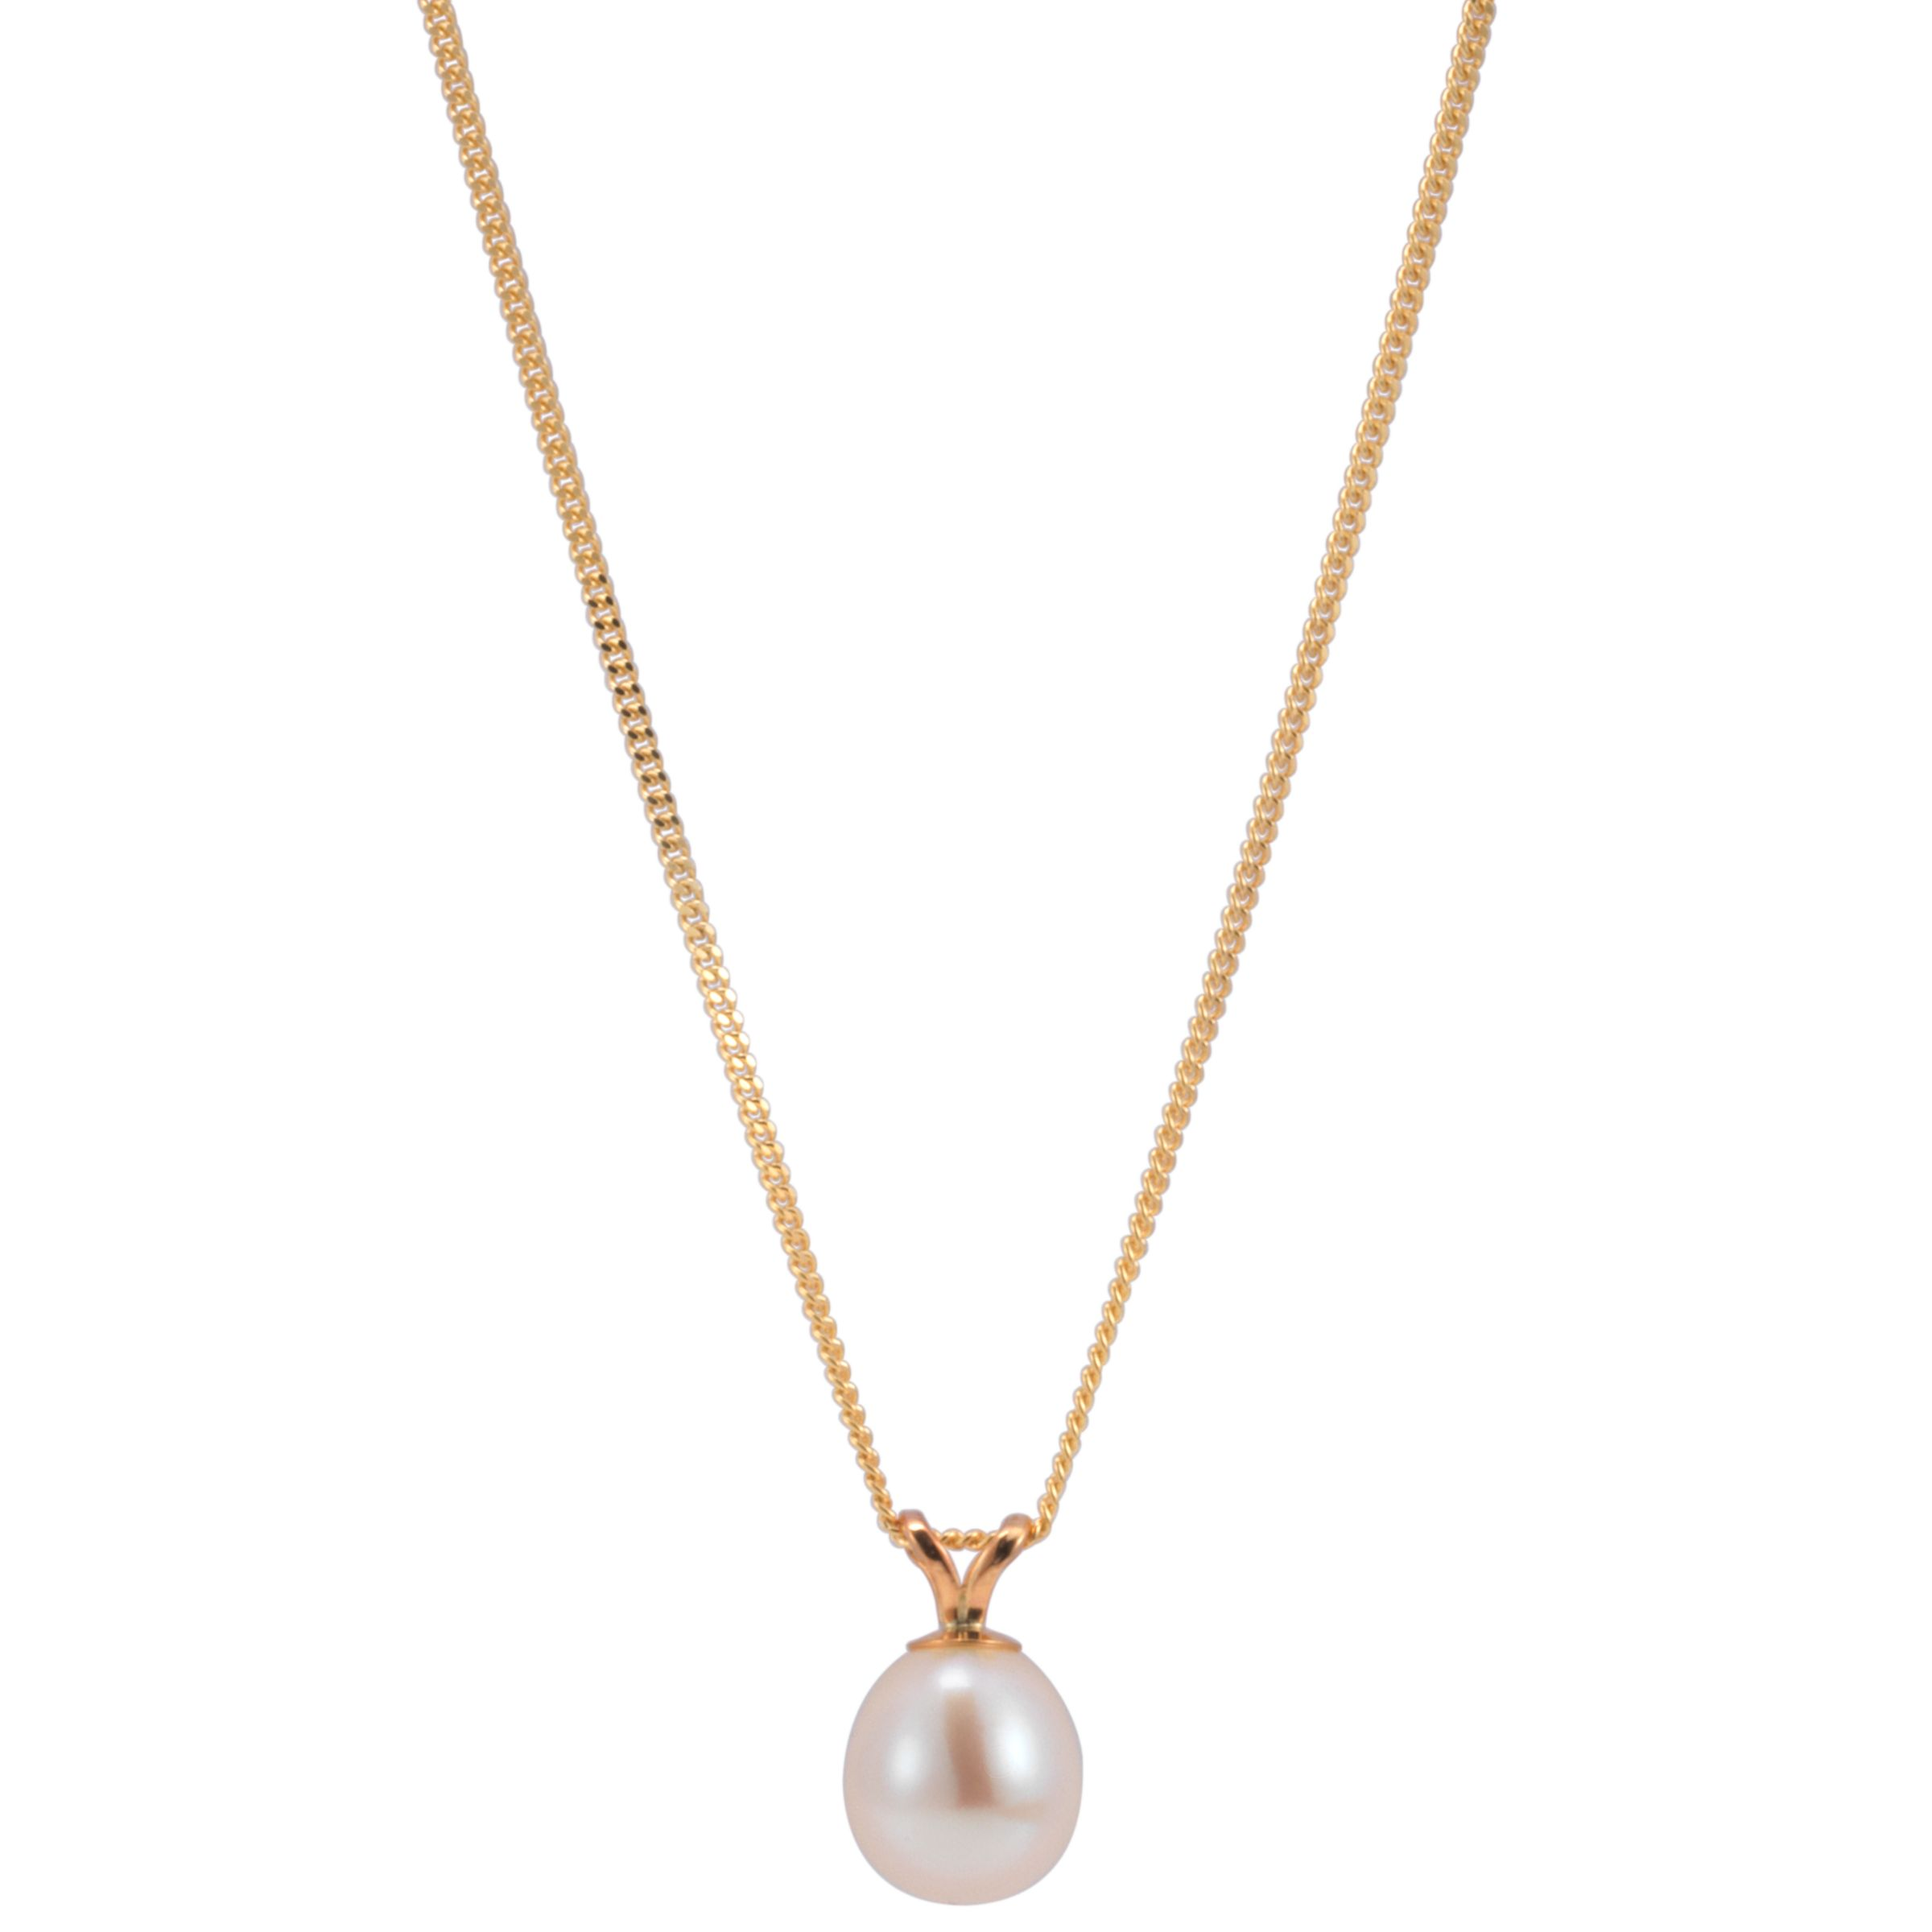 Freshwater White Pearl Pendant Necklace with Gold Adjuster Chain